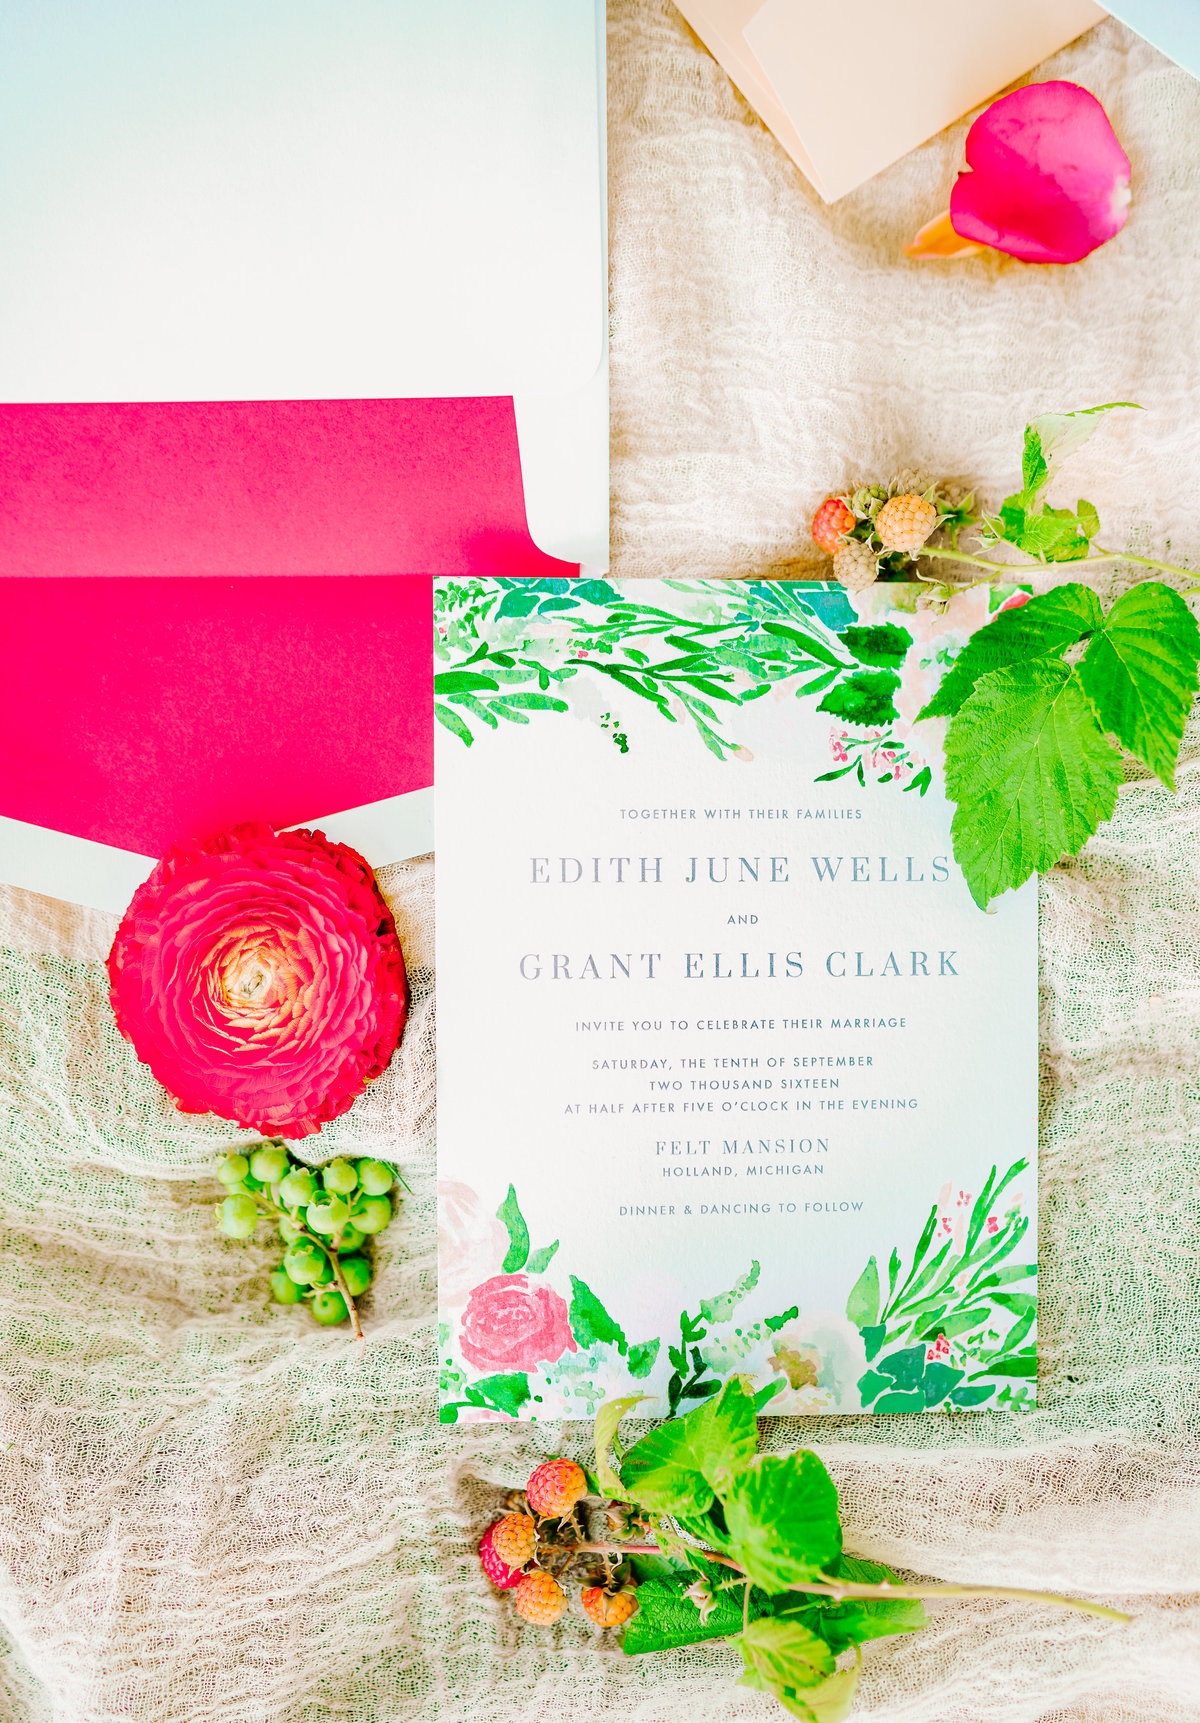 floral invitation suit felt mansion estate wedding